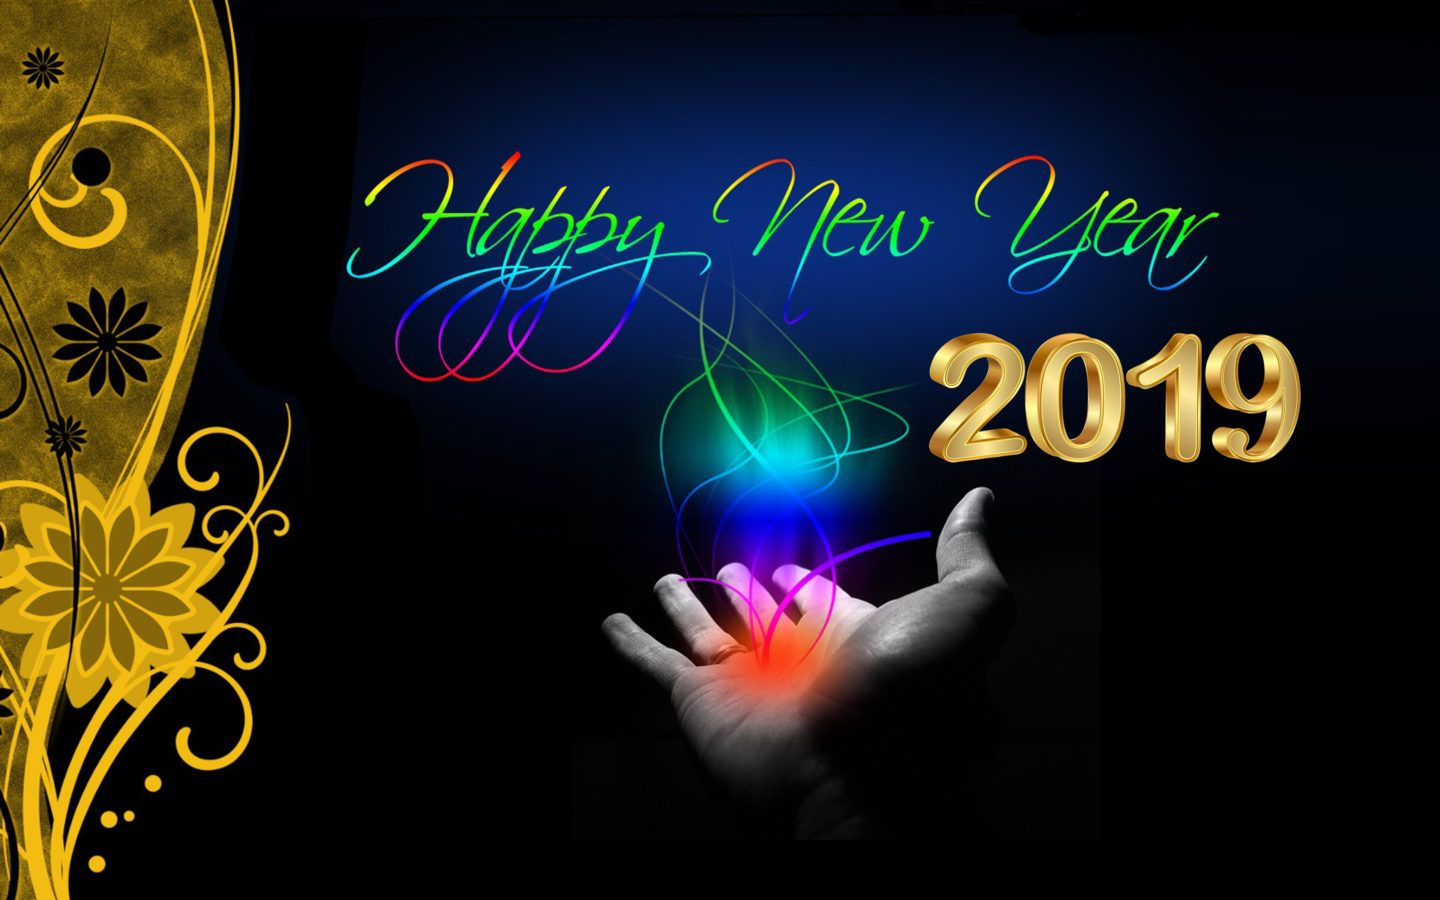 Desktop Wallpaper 2018 Images For Happy New Year Day Happy New Year Wallpaper Happy New Year Fireworks Happy New Year Images